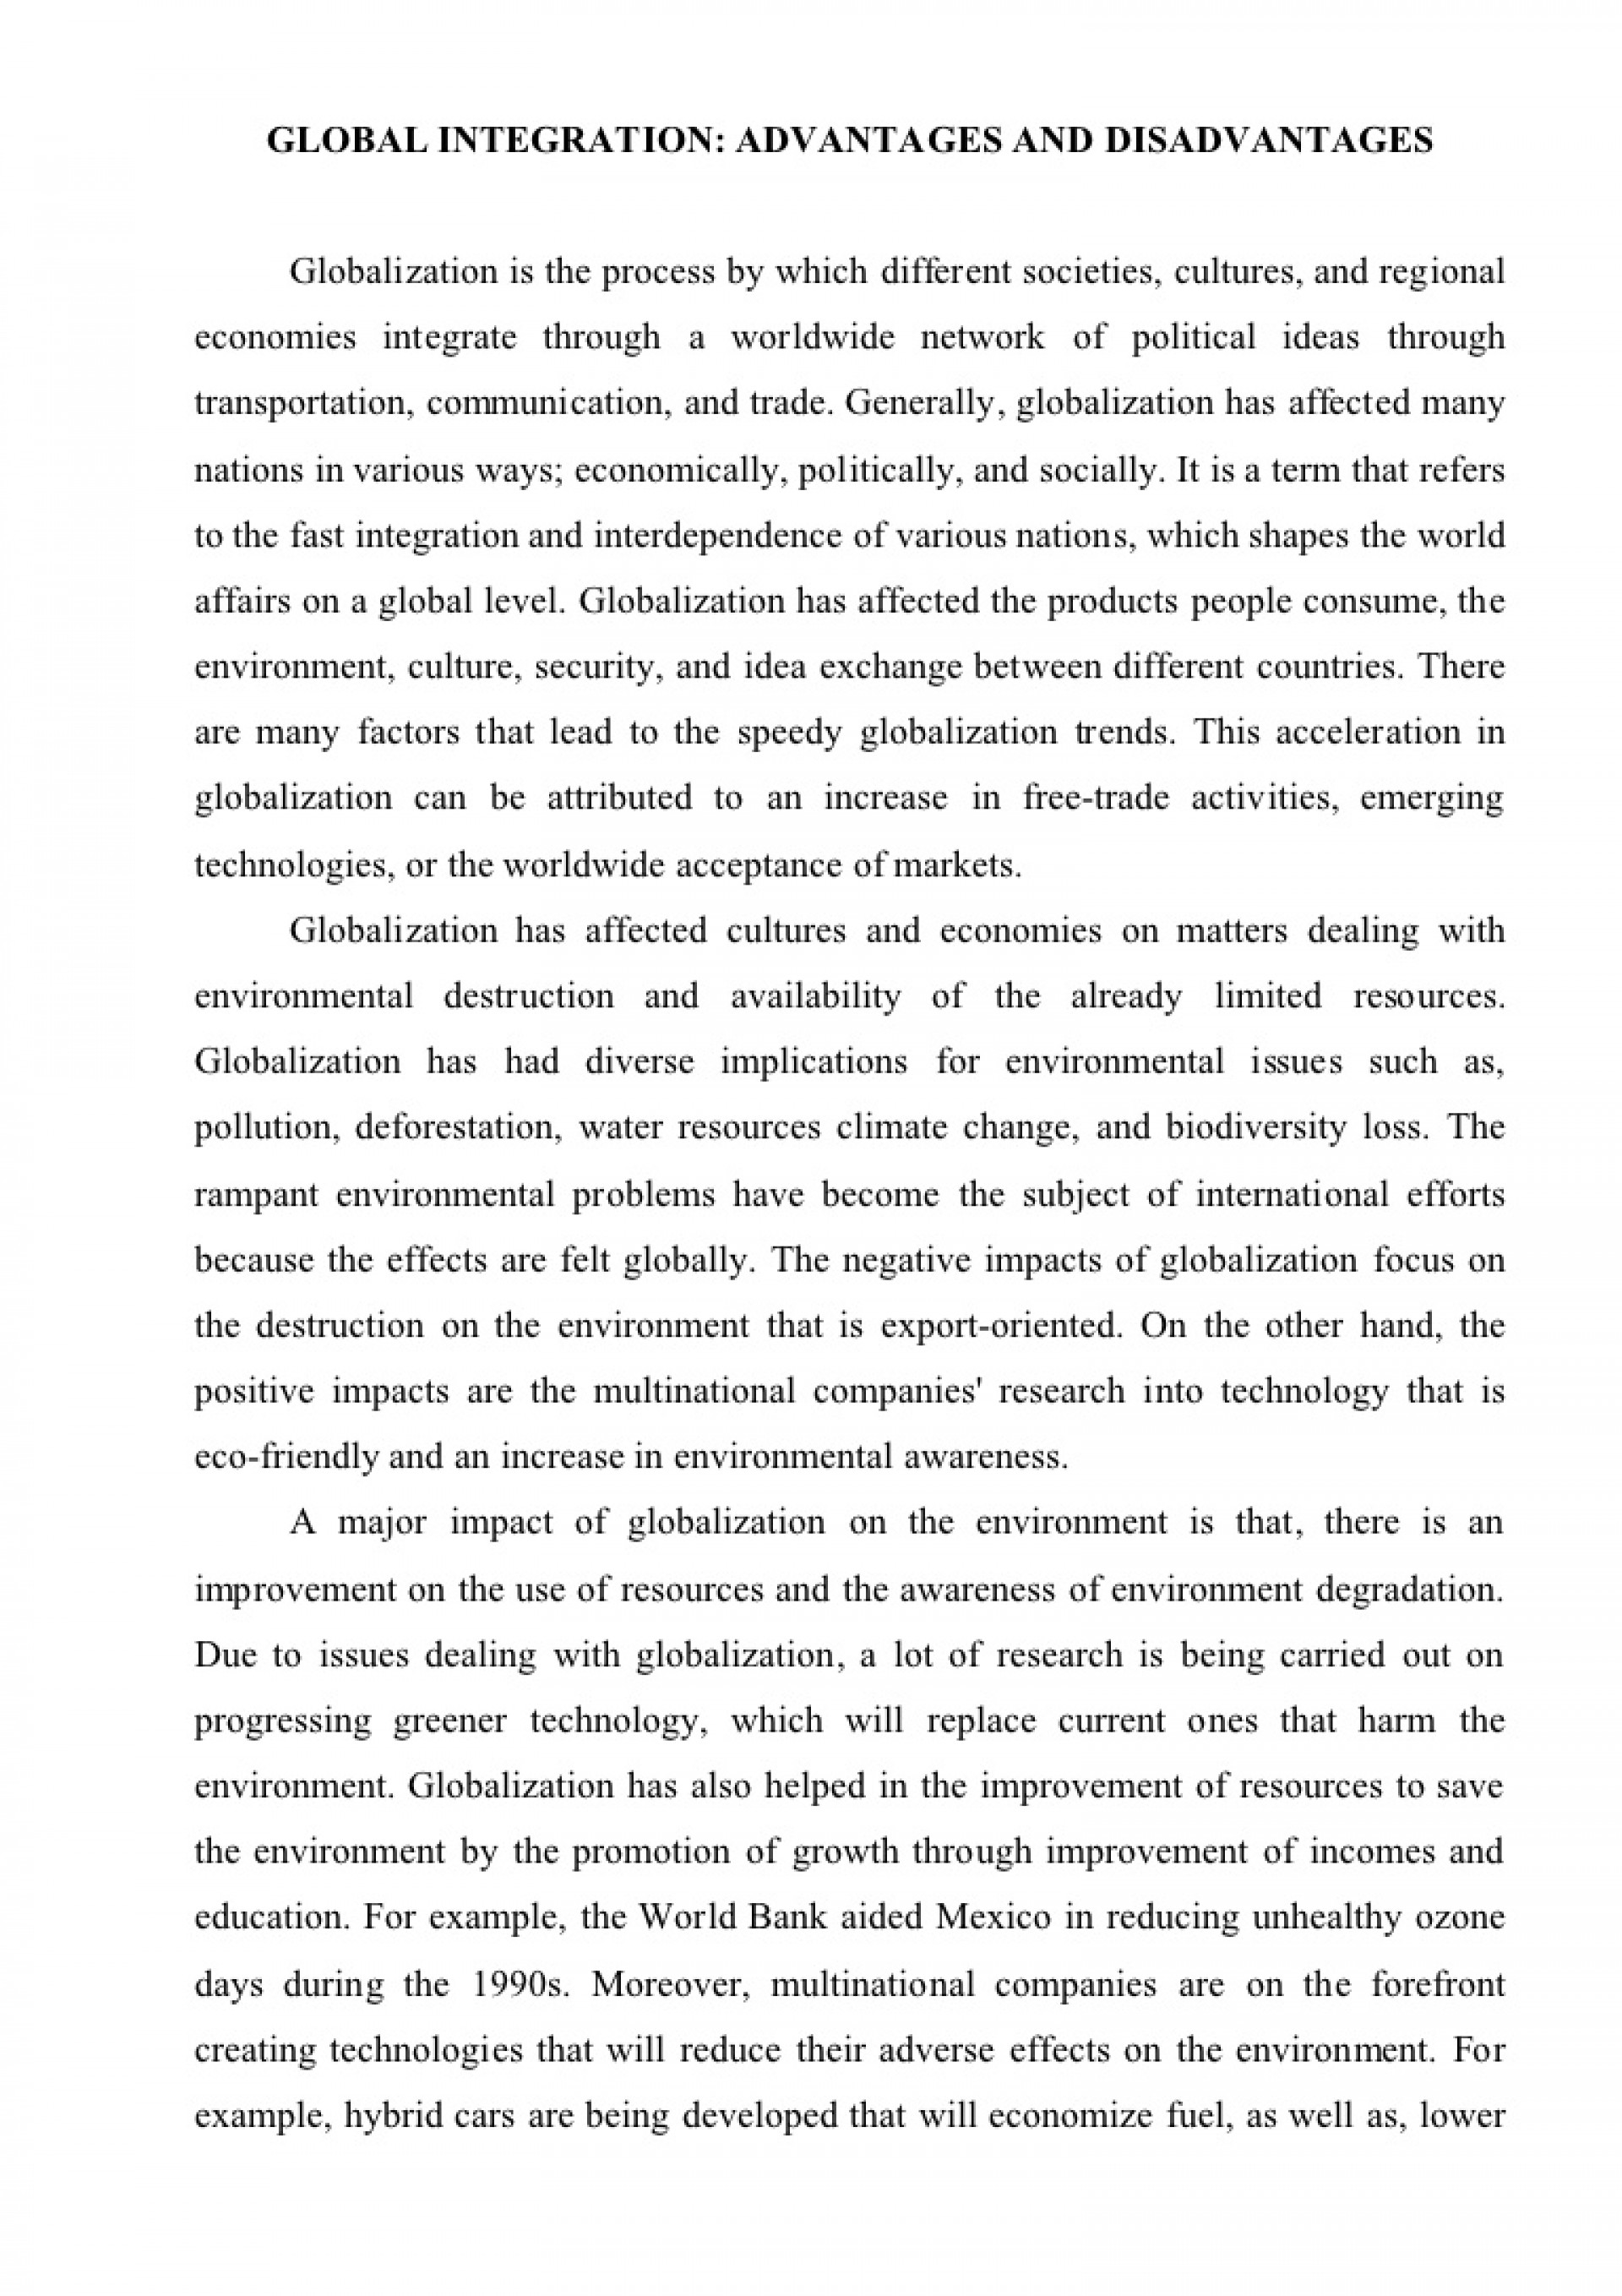 021 Essayglobalization Phpapp02 Thumbnail Essay Example Advantage And Disadvantage Of Shocking Science Advantages Disadvantages In Tamil Pdf Marathi Language English 1920